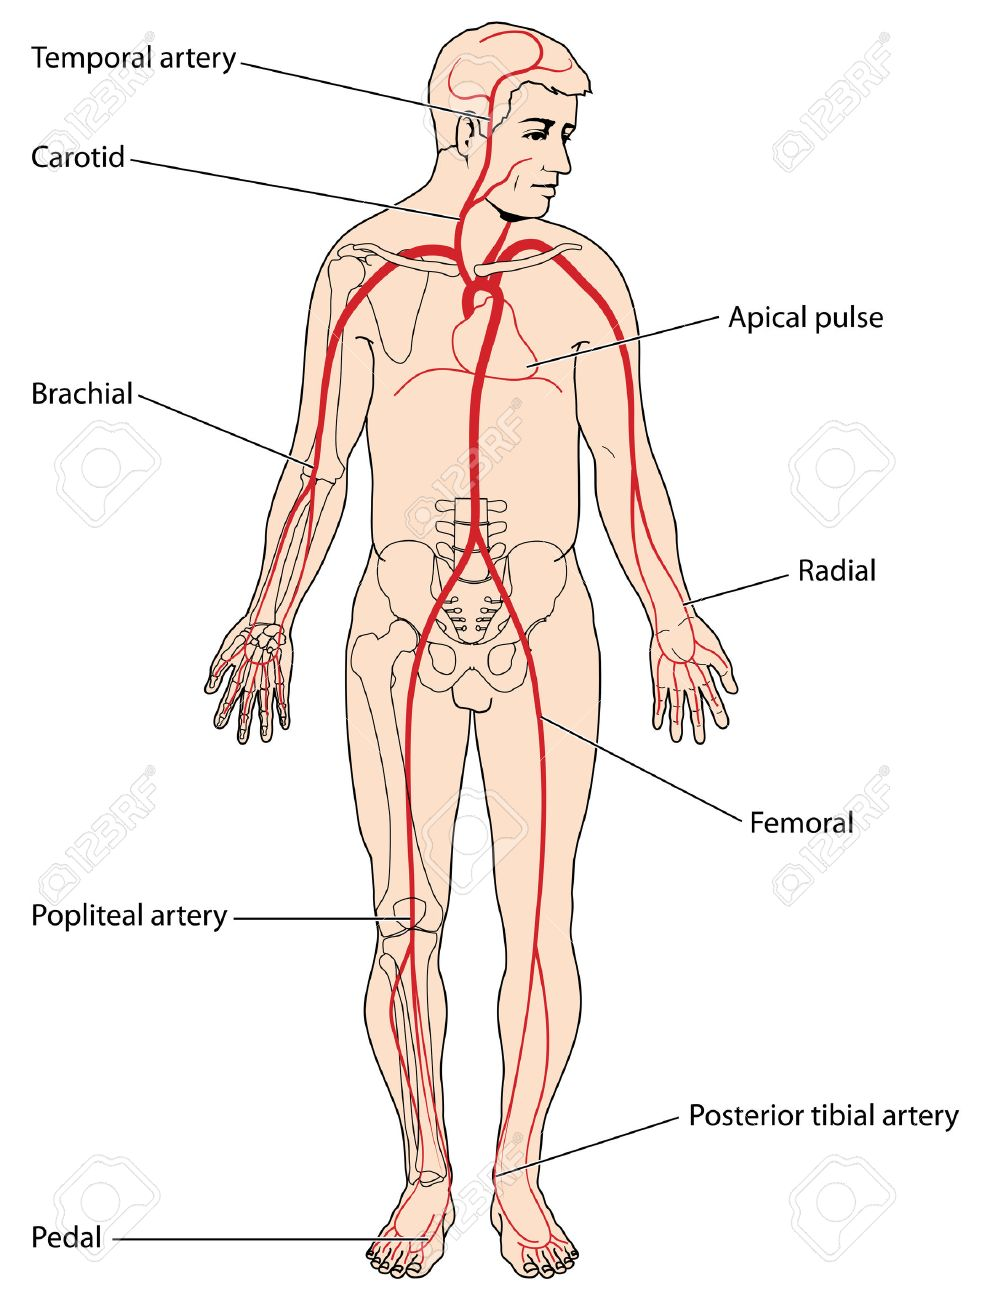 The Major Arteries And Pulse Points Of The Head Arms And Legs